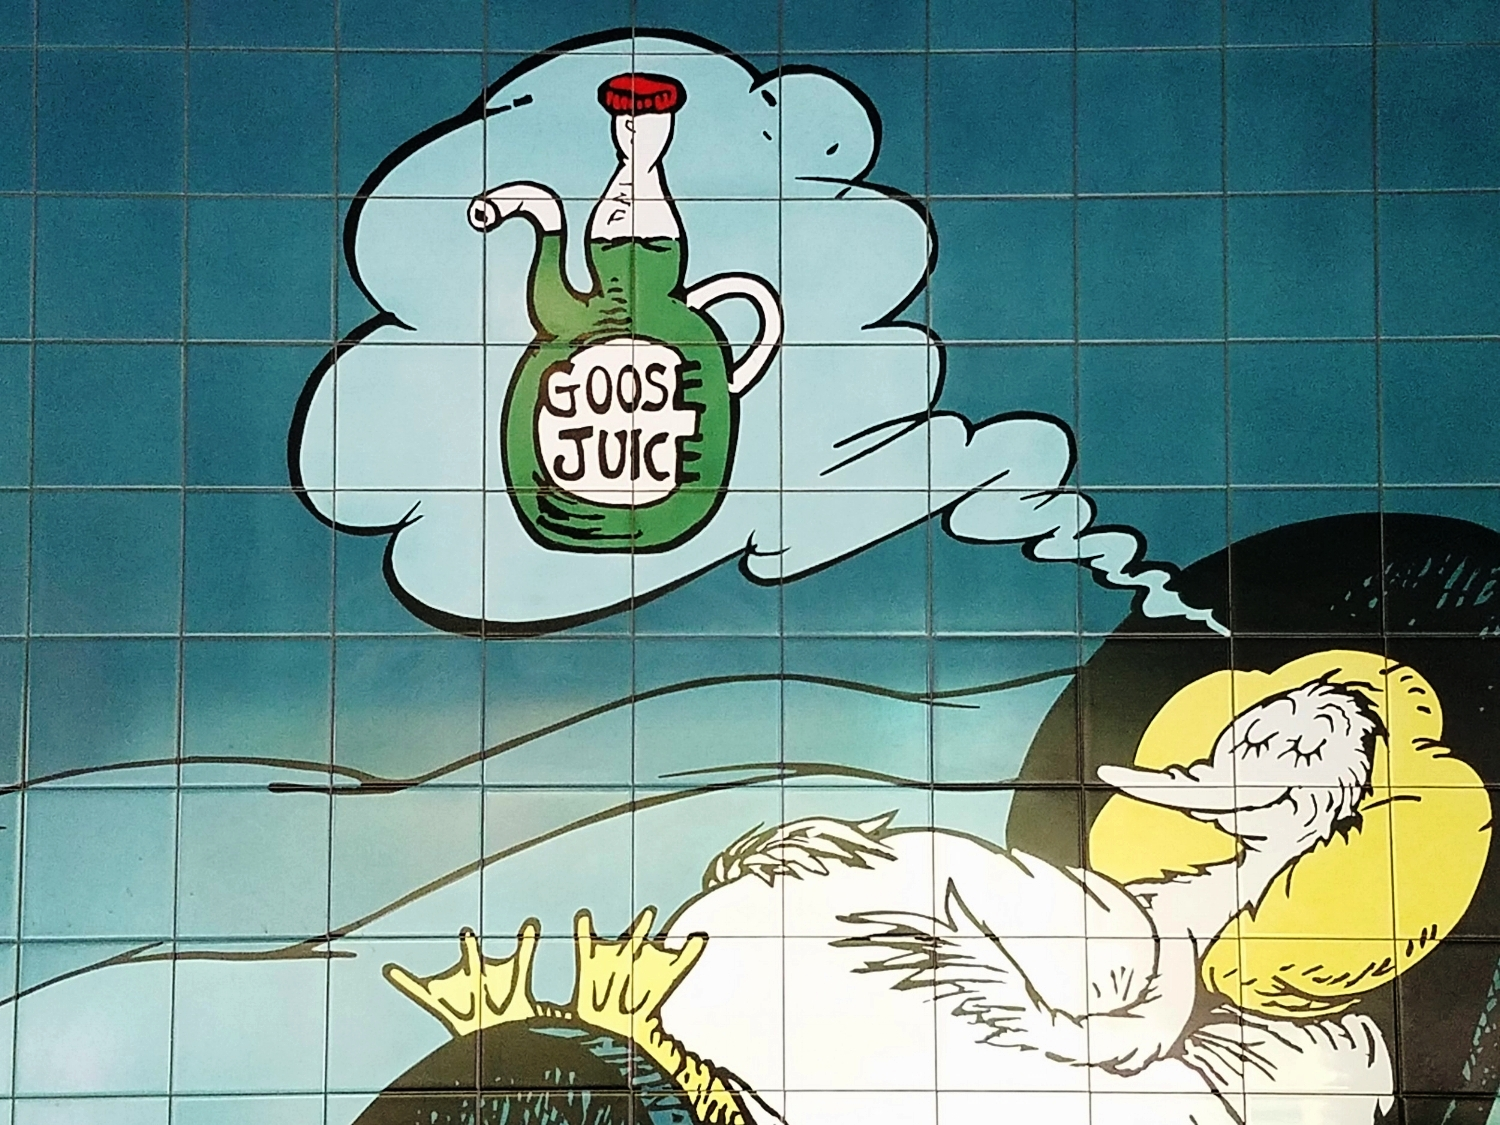 The goose dreaming of goose juice